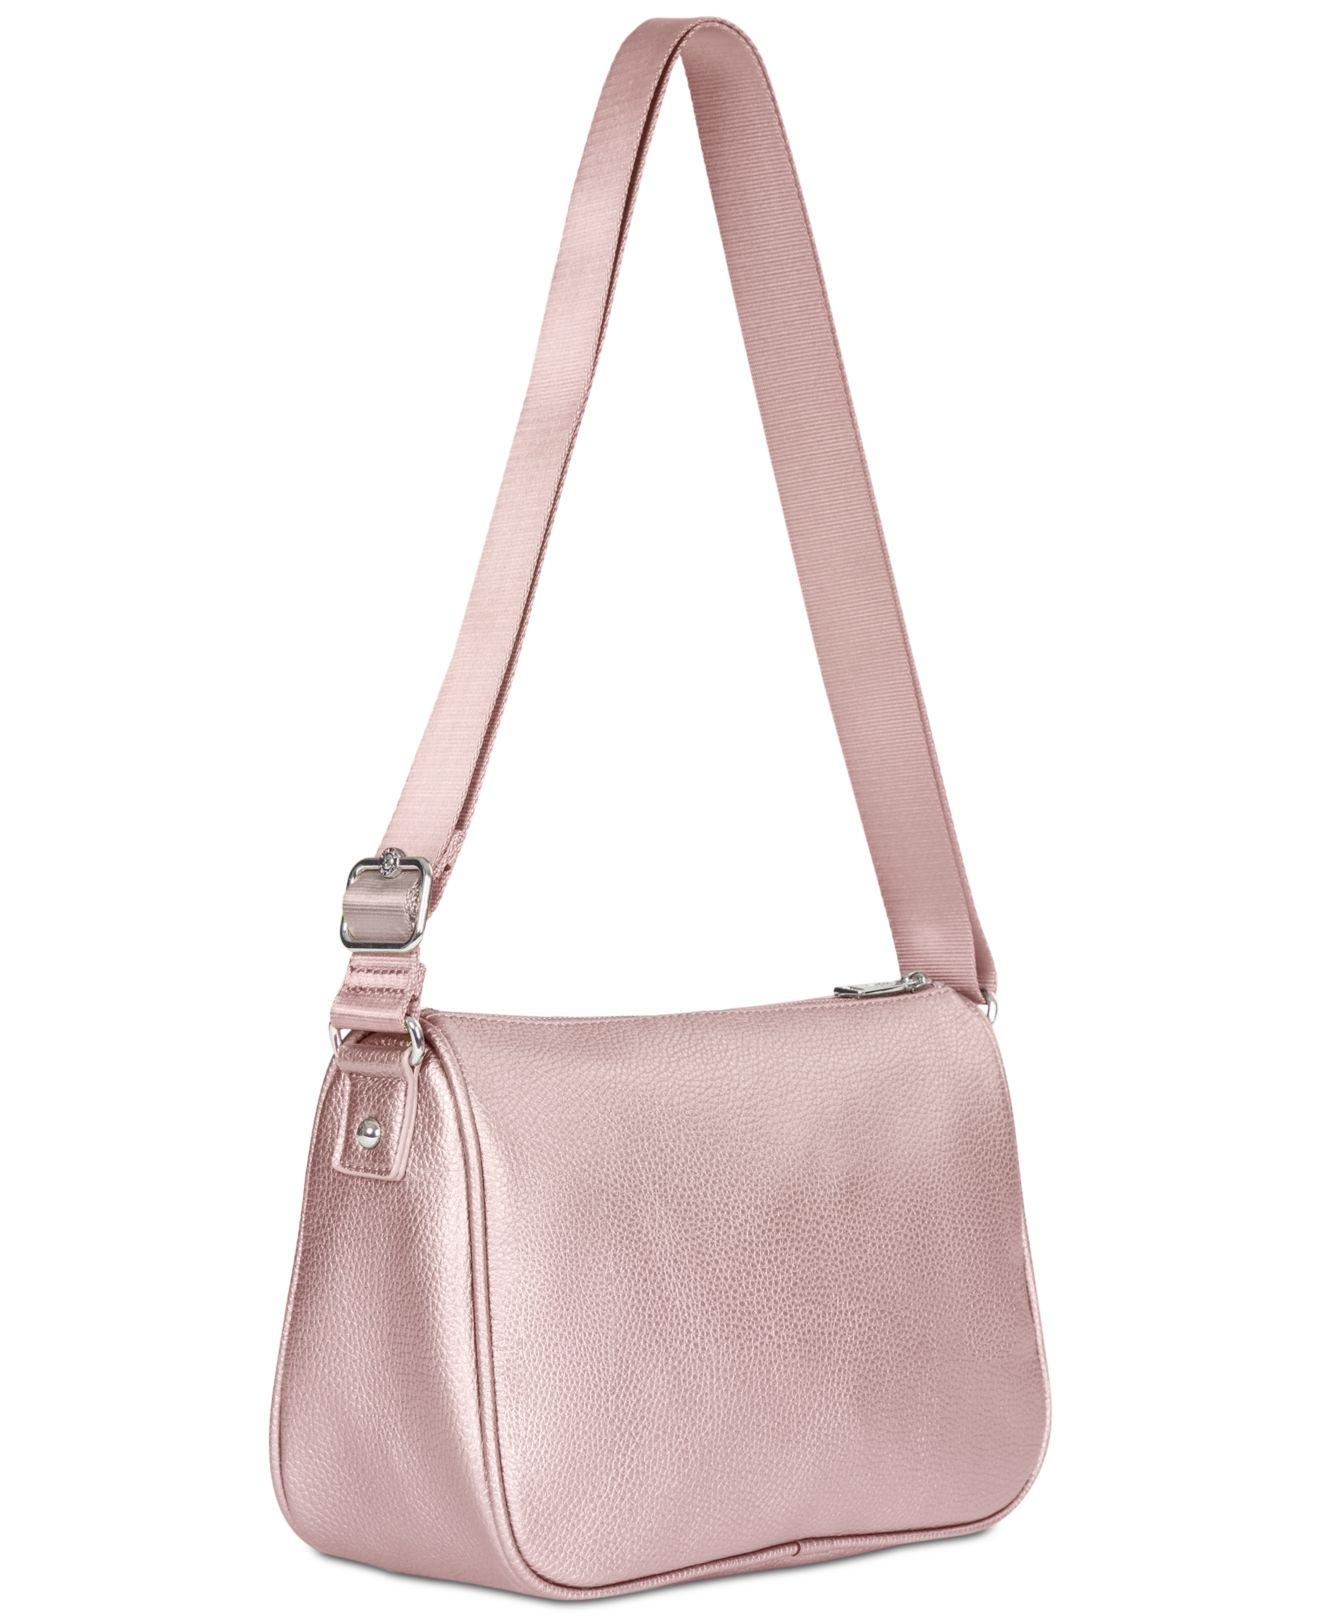 footwear look for fashionablestyle Callie Small Crossbody